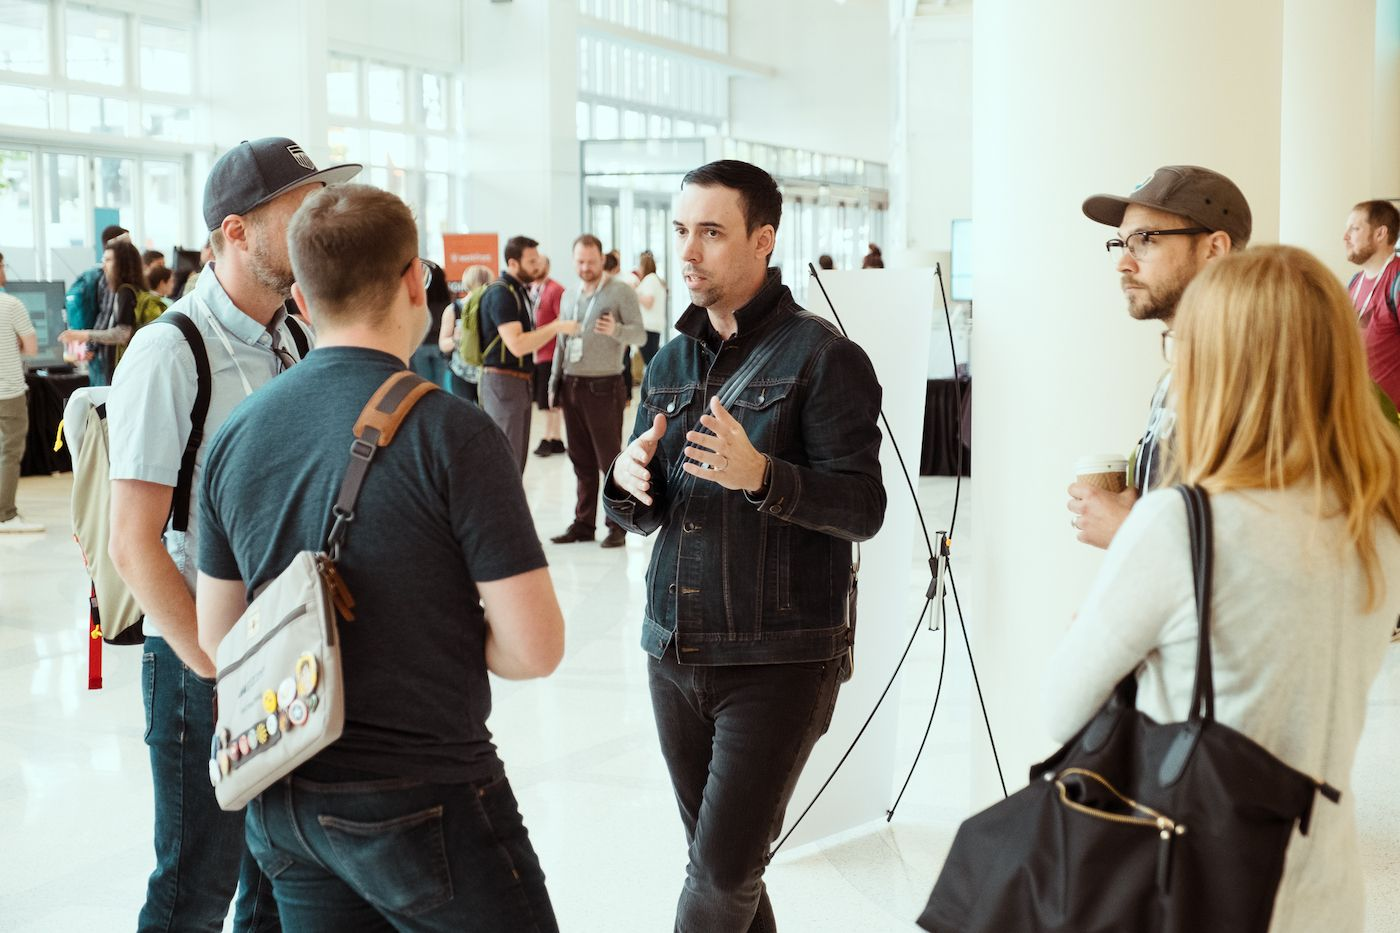 designers having conversation at front conference